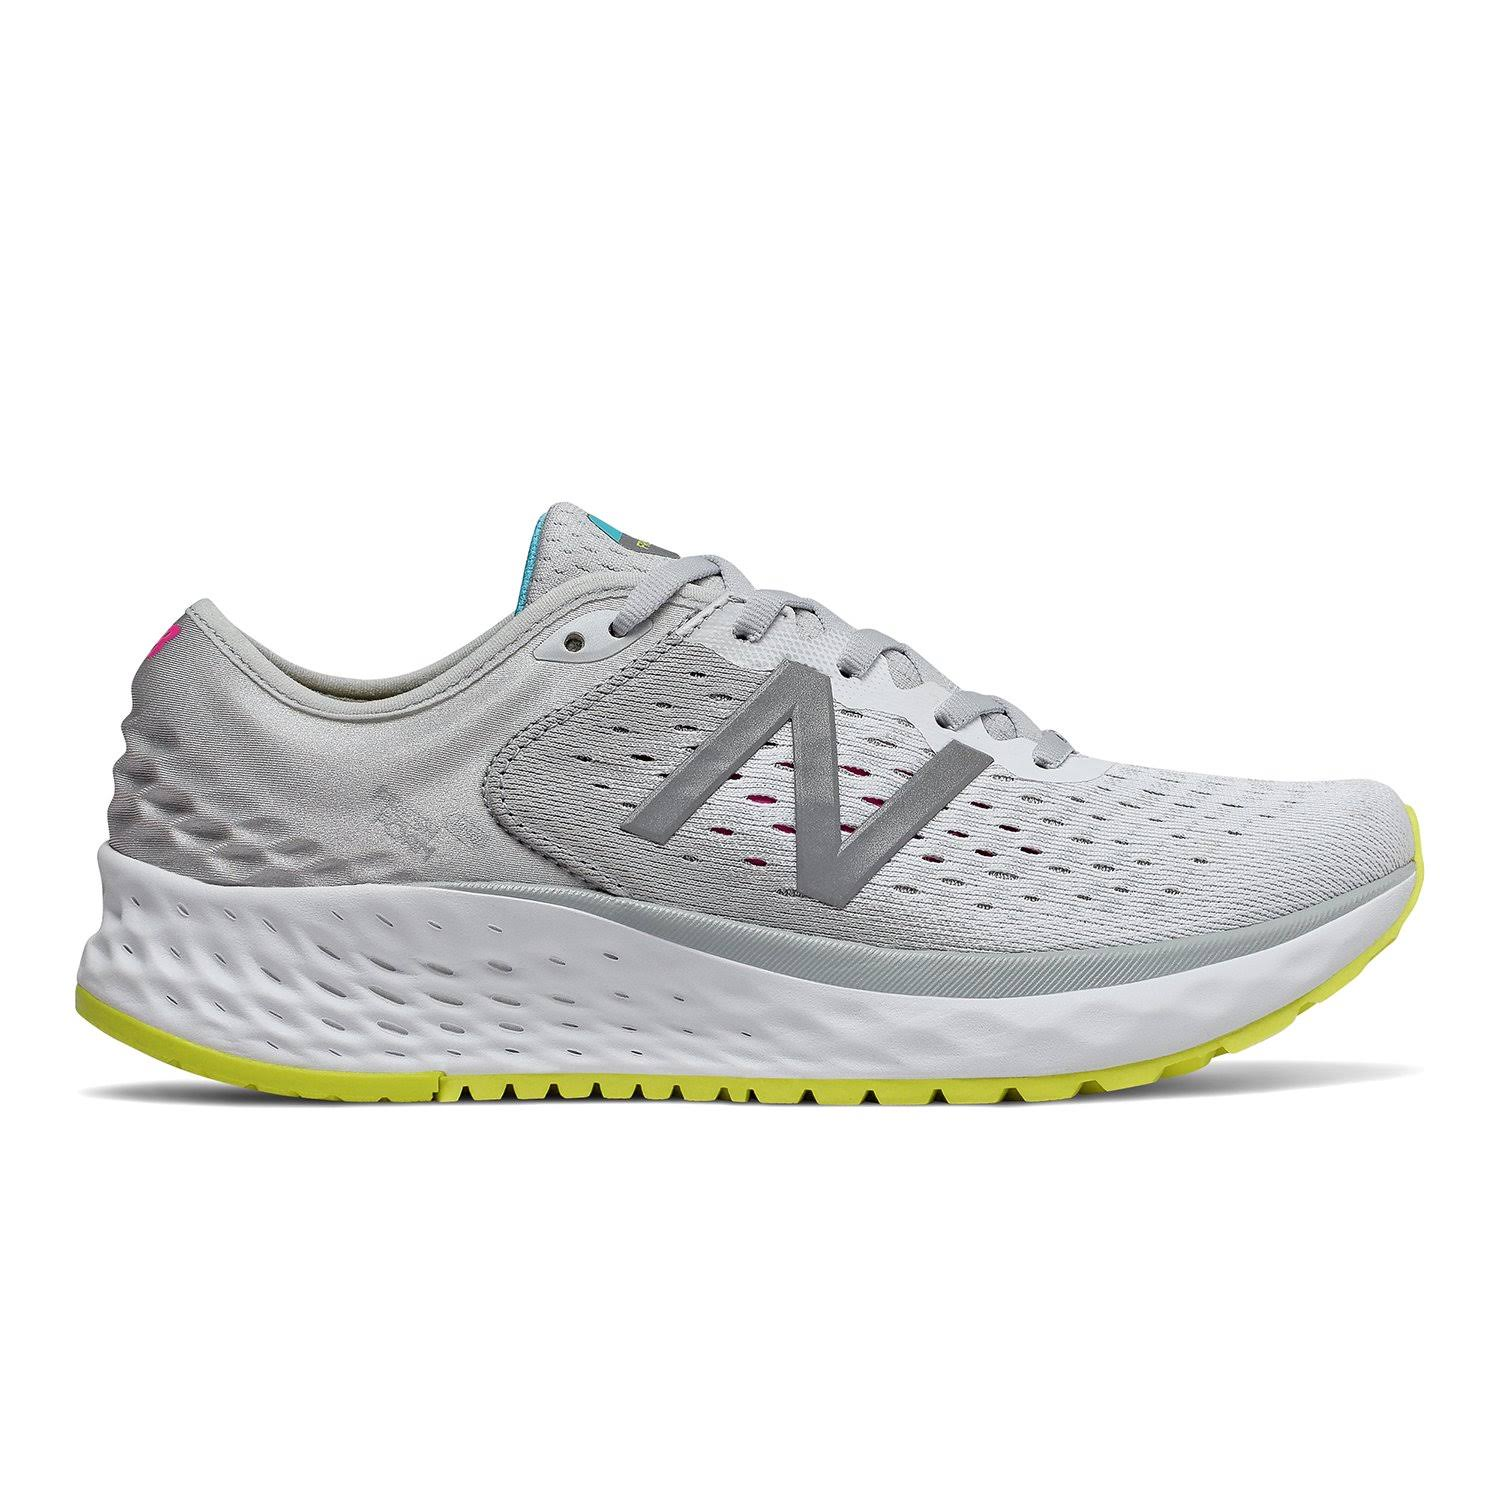 New Balance Women's Fresh Foam Running Shoes - Light Aluminum/Silver